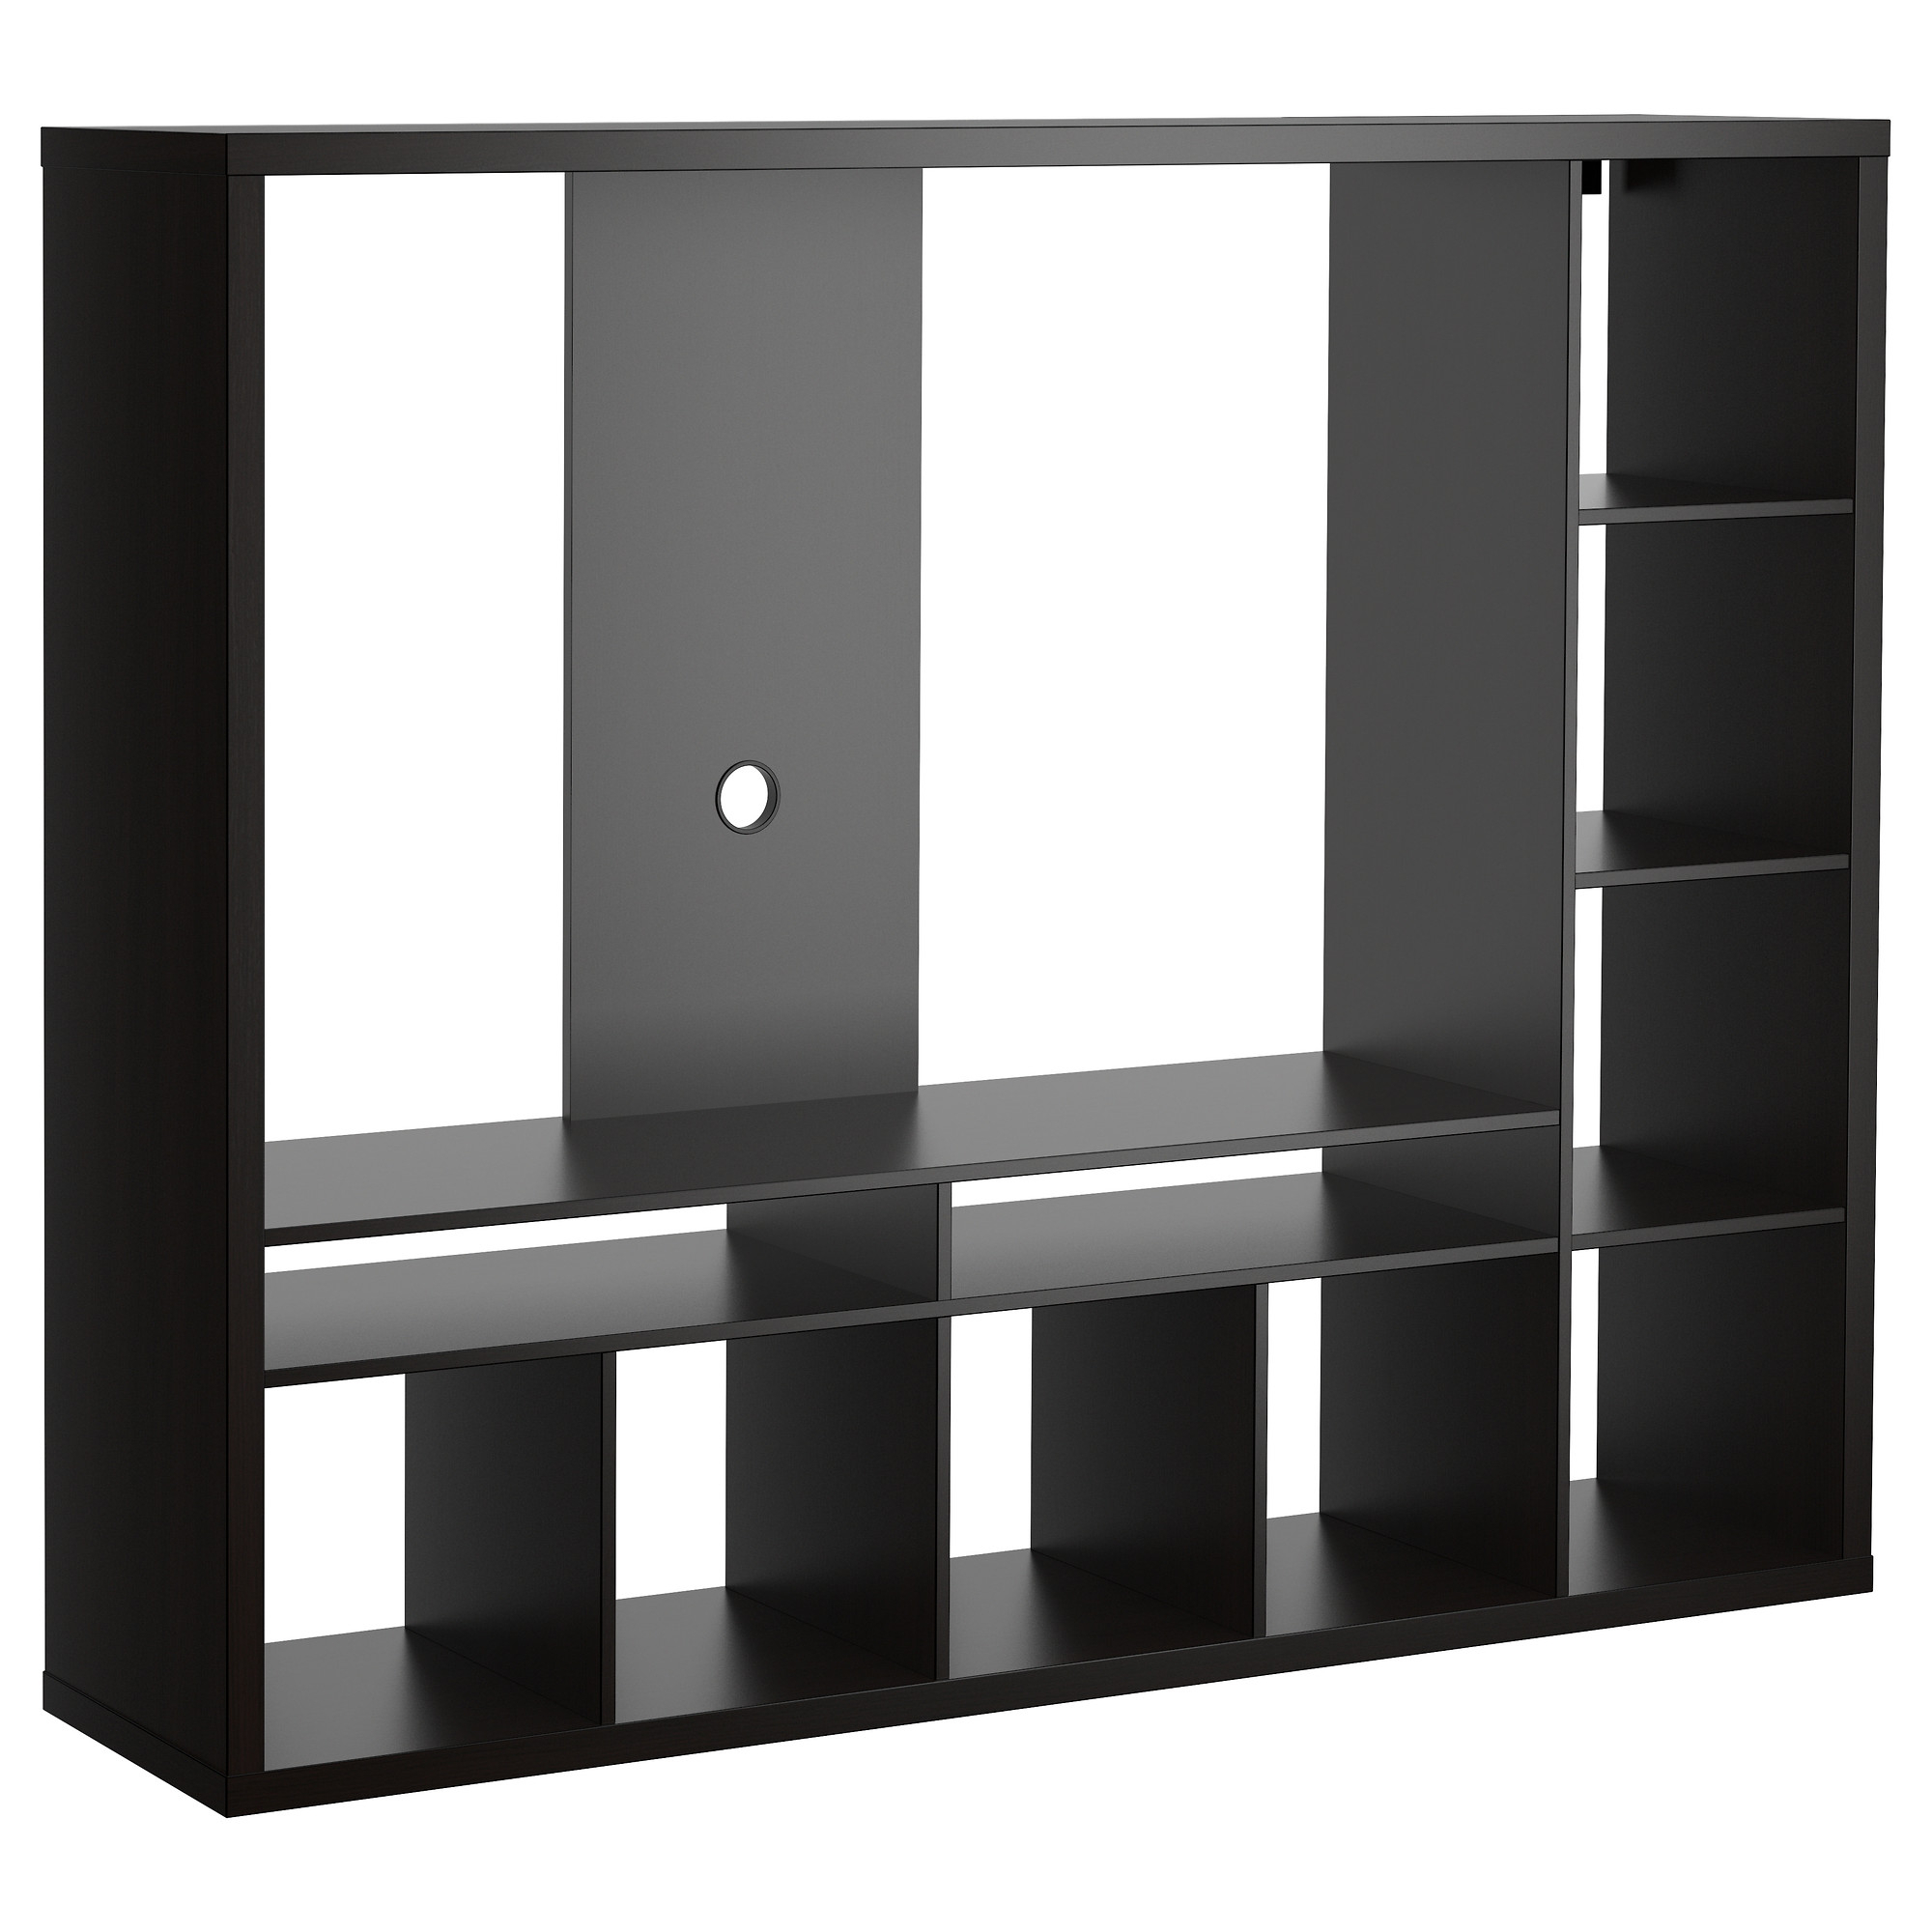 Playroom Tv Stands Intended For 2017 Media Console Modern Entertainment Center Ikea Tv Stand Design (View 8 of 20)